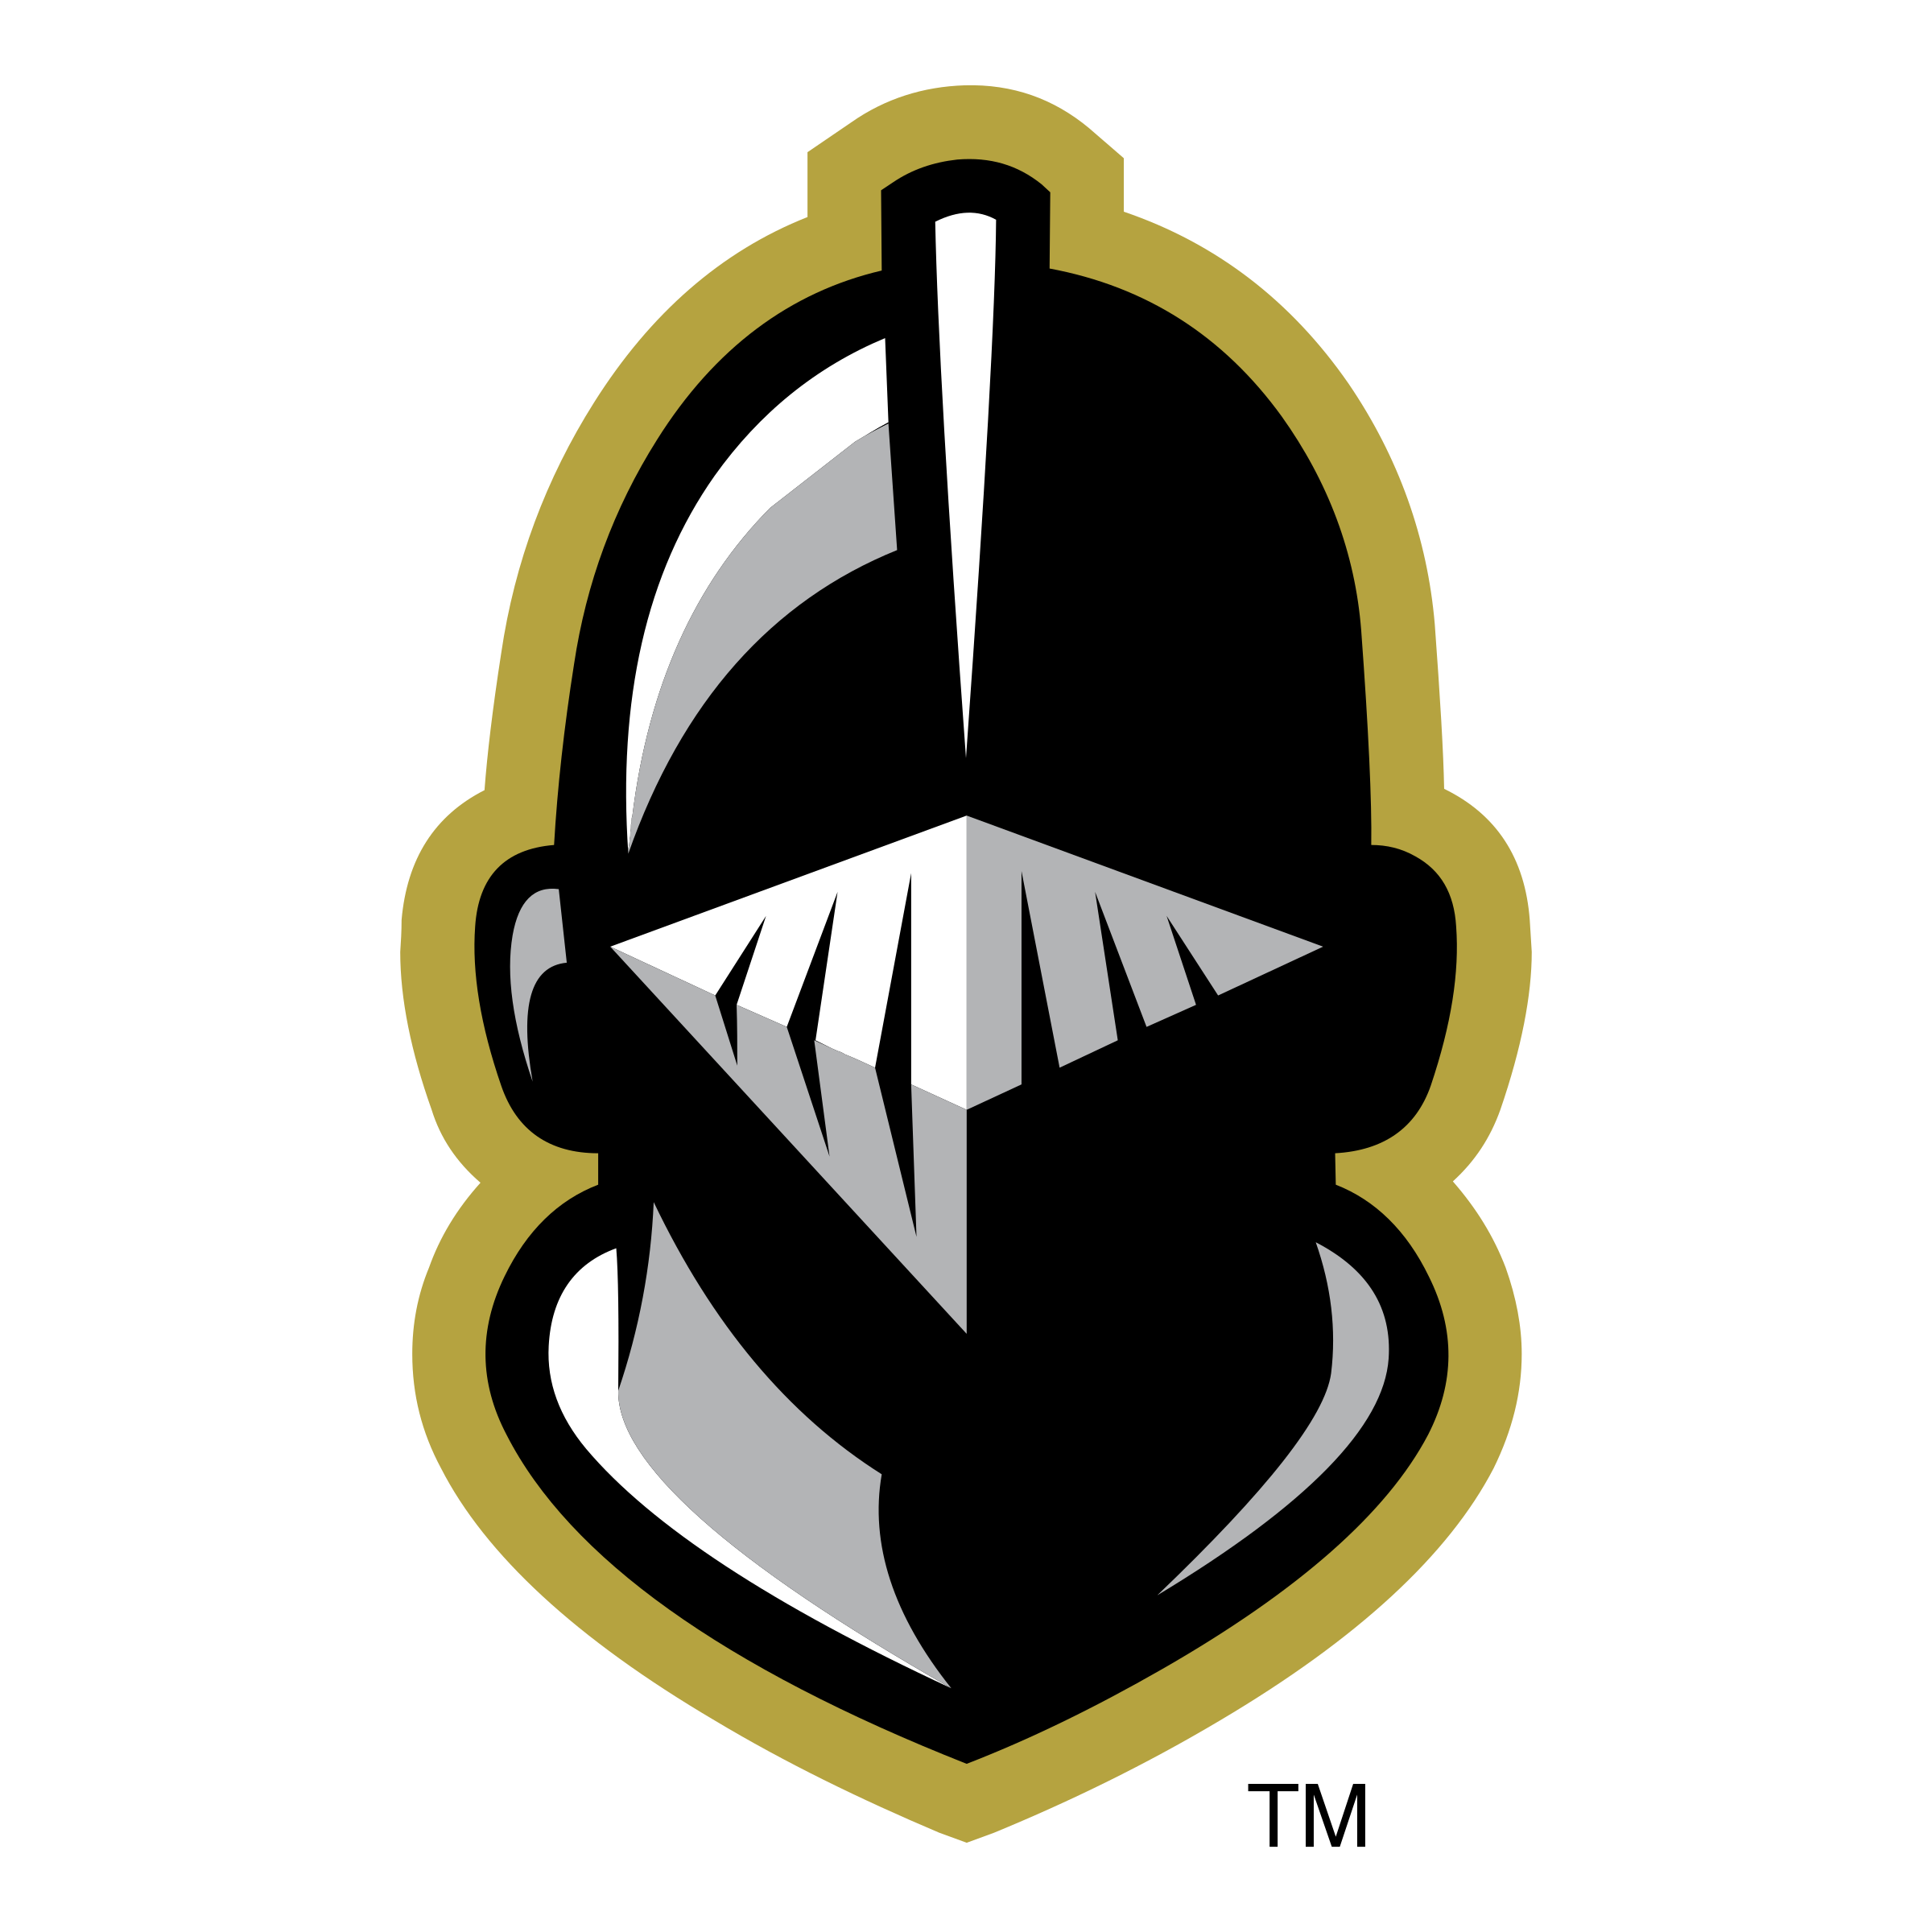 Knights vector svg. Army black logo png